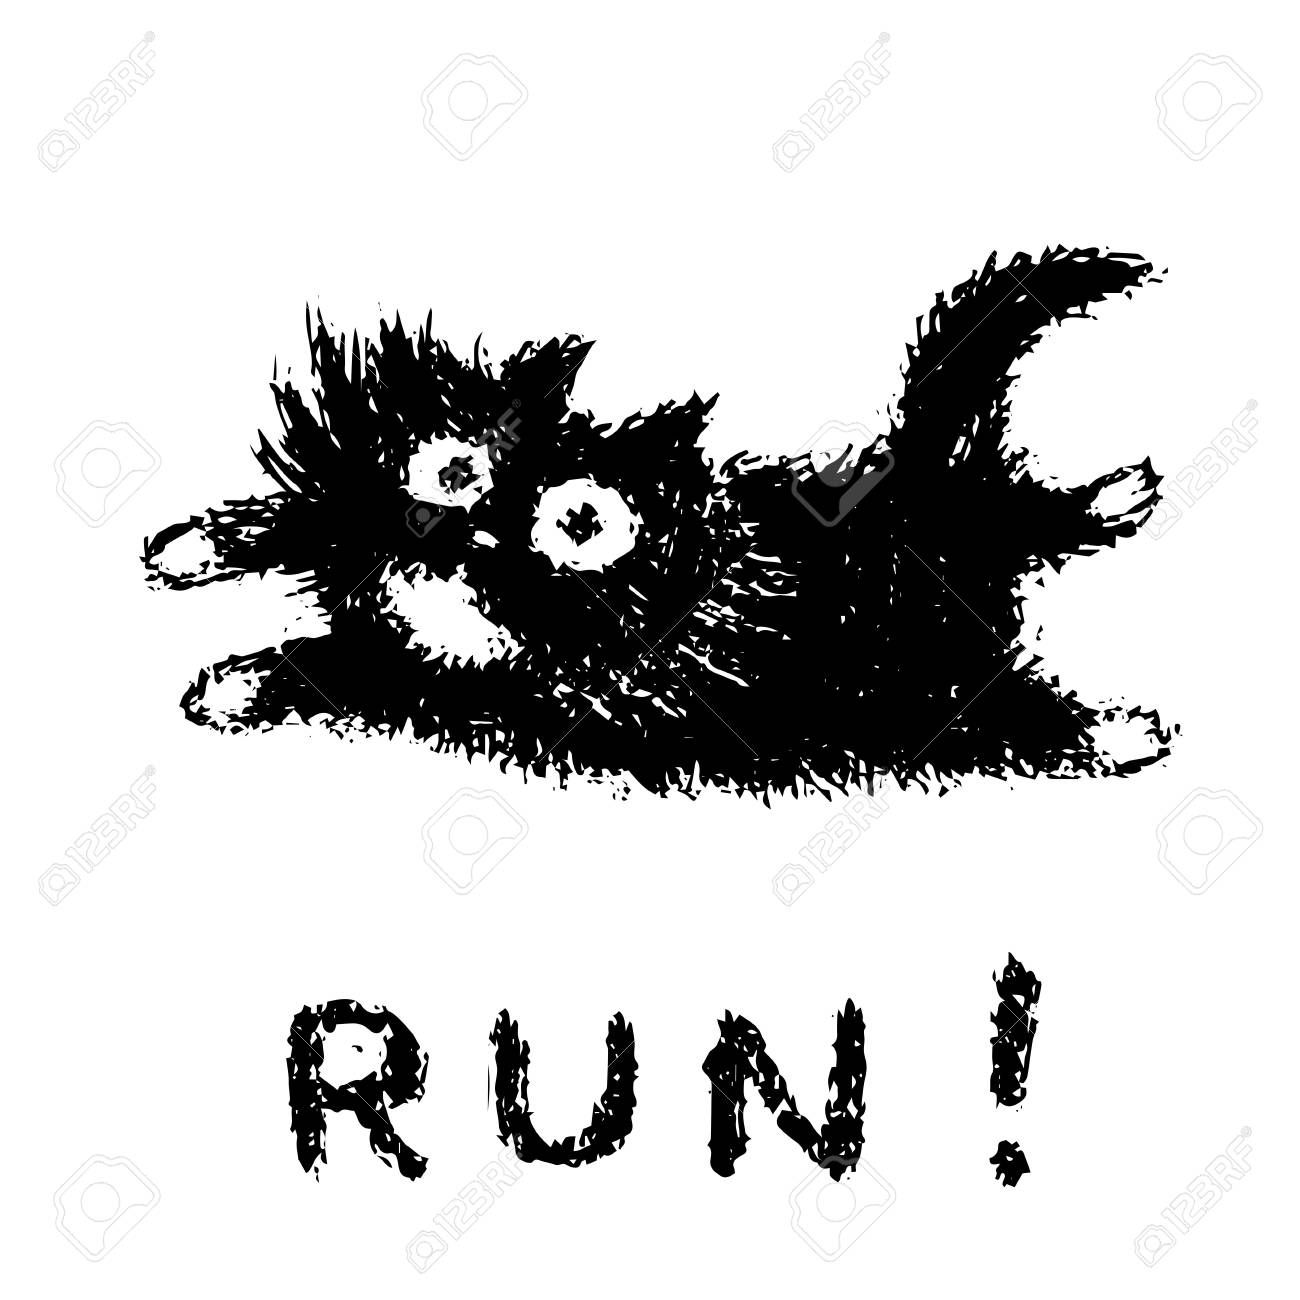 Clipart Cat Running Cats Free Stock Photo Illustration - Cat Running Clip  Art - Free Transparent PNG Clipart Images Download